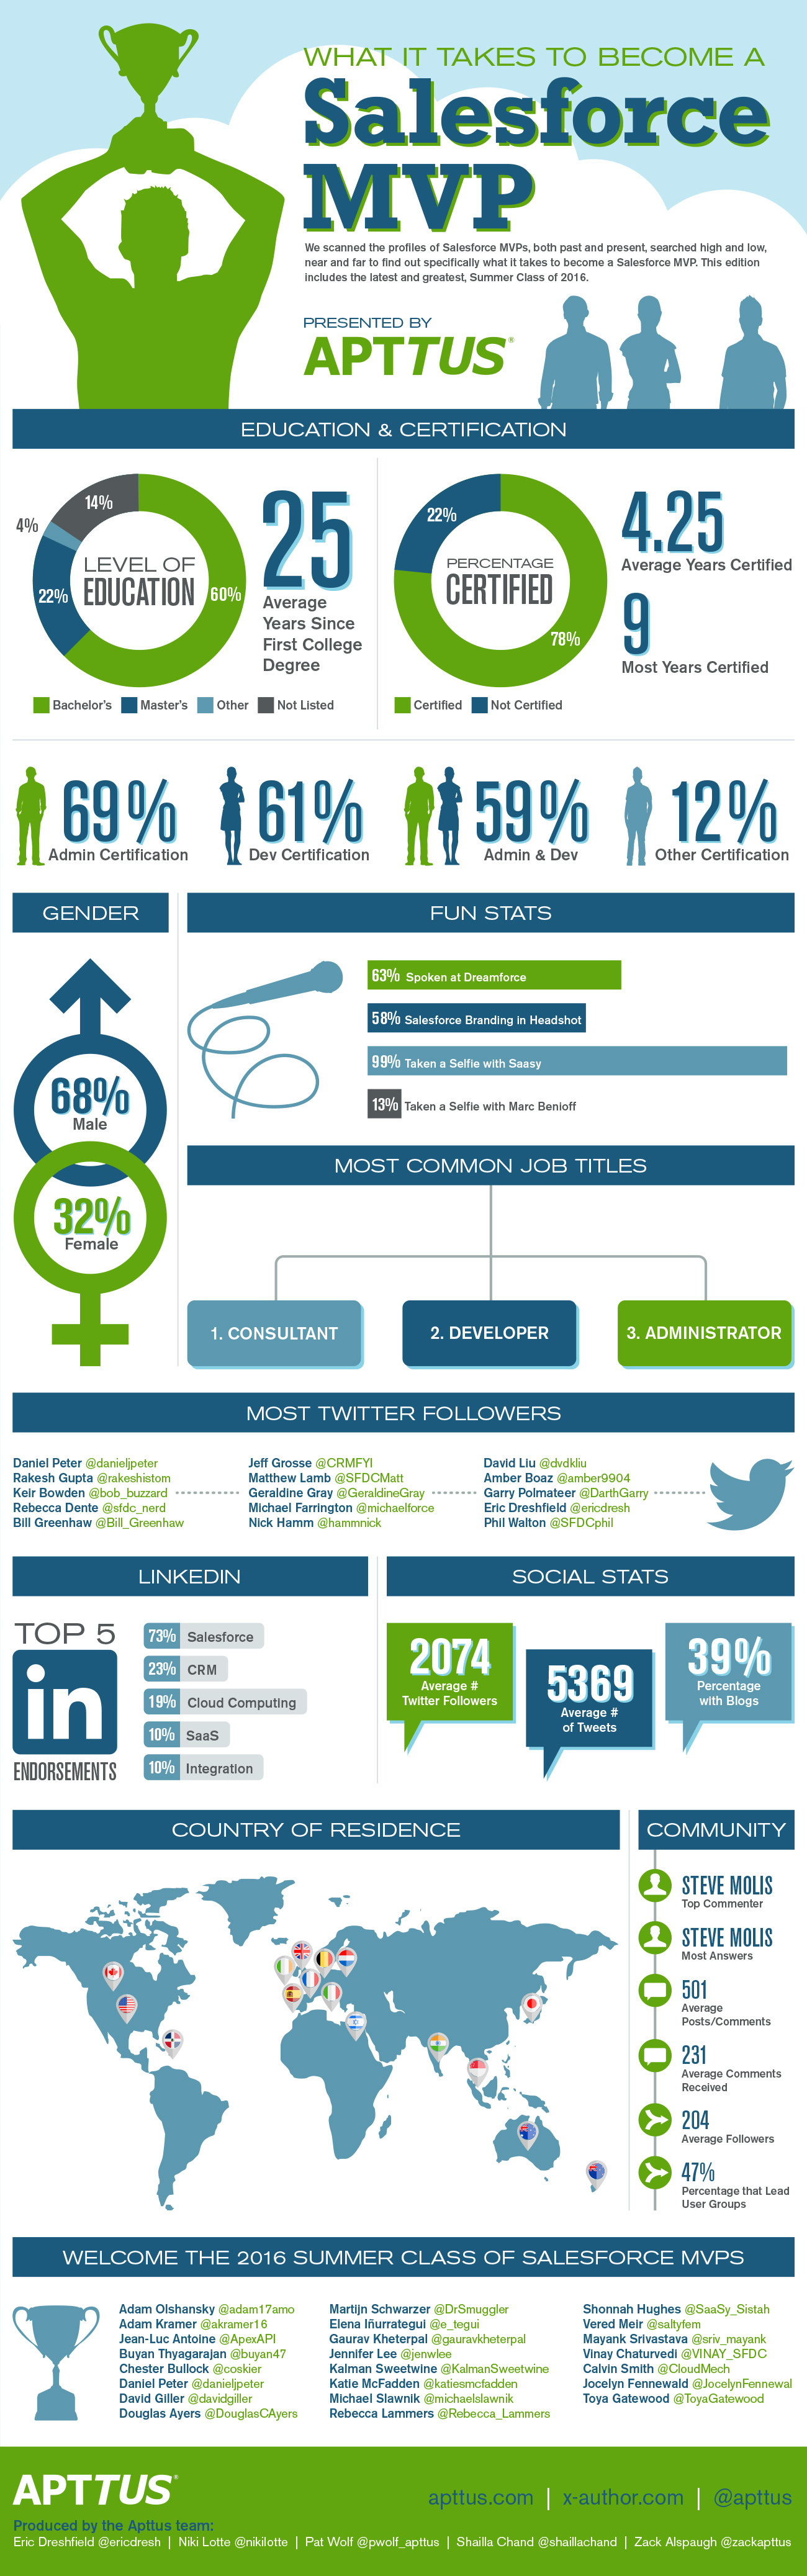 What You'll Get with the Salesforce MVP Infographic